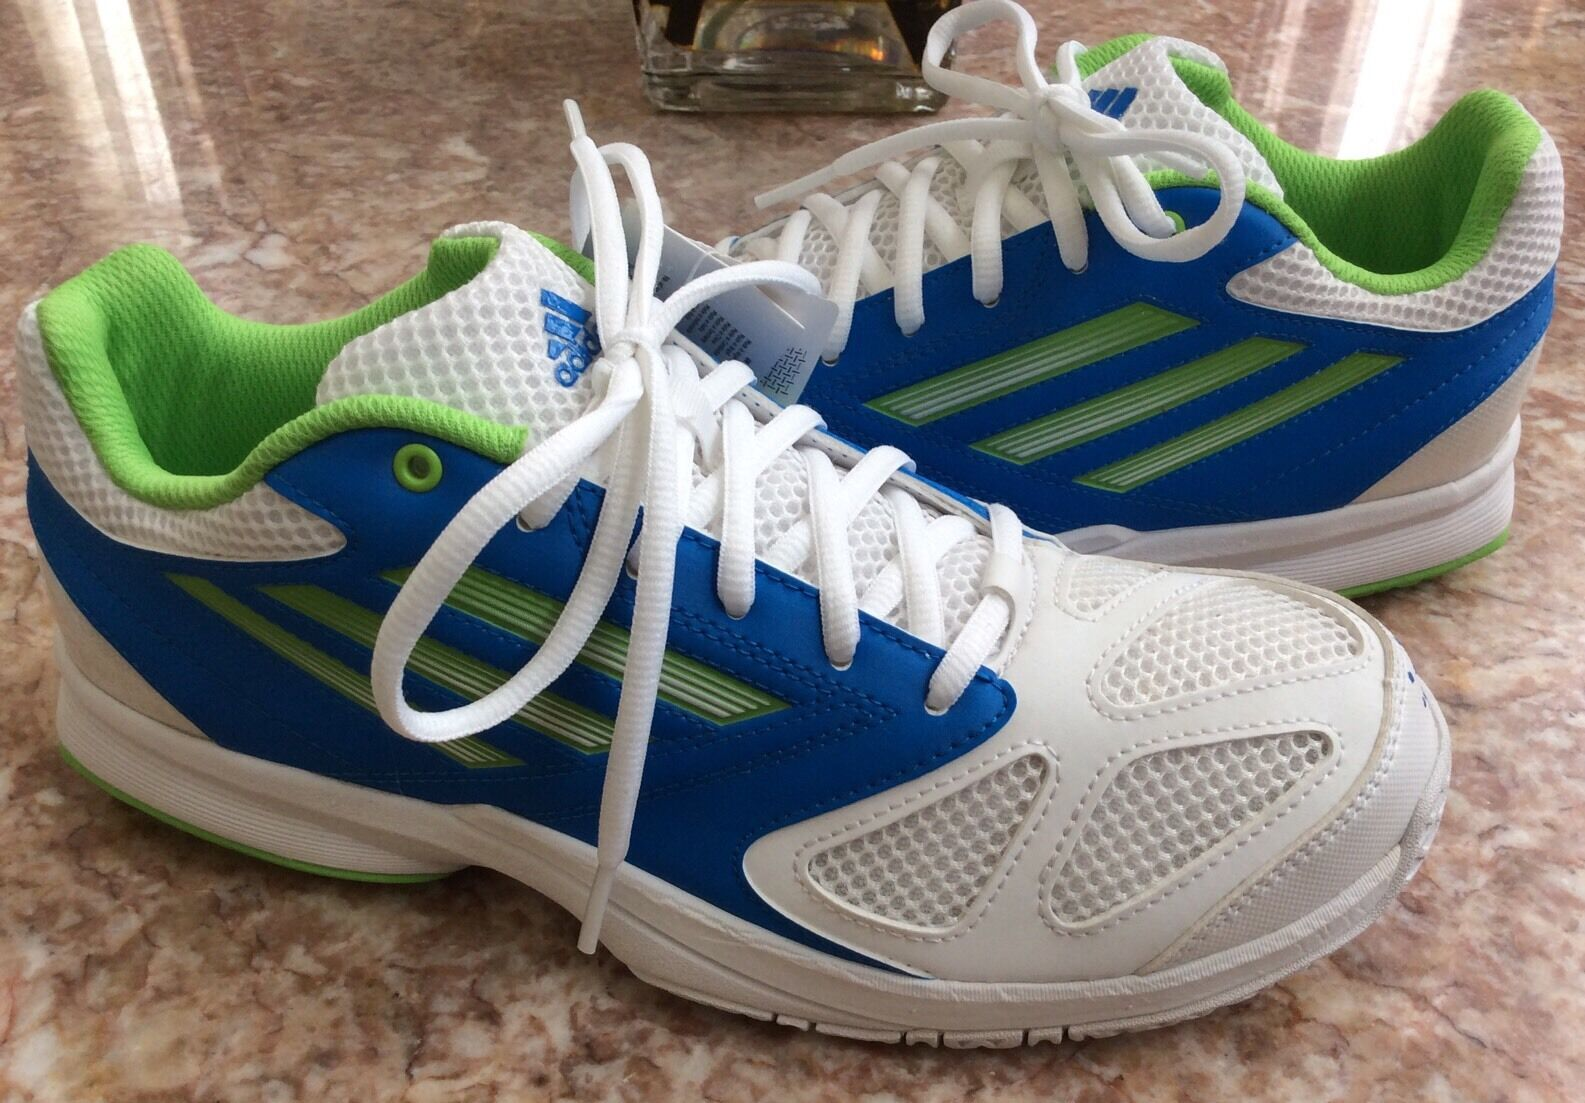 New Adidas Feather Team 2 Men's White bluee Green Handball shoes Size 7.5  G96456